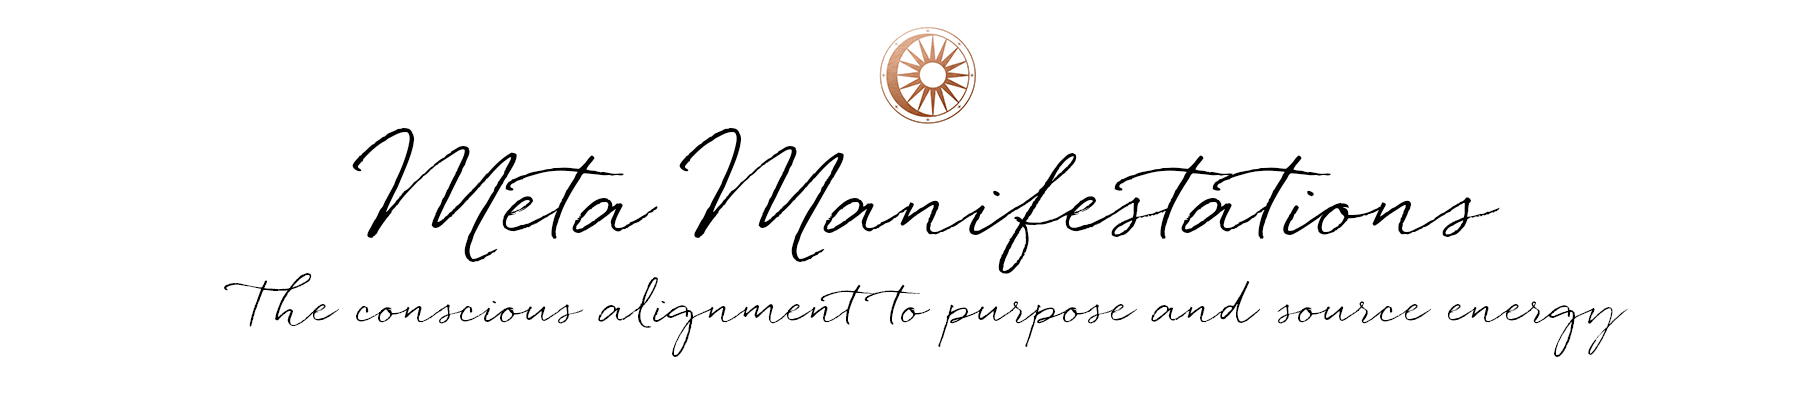 Meta Manifestations - alignment to source and purpose